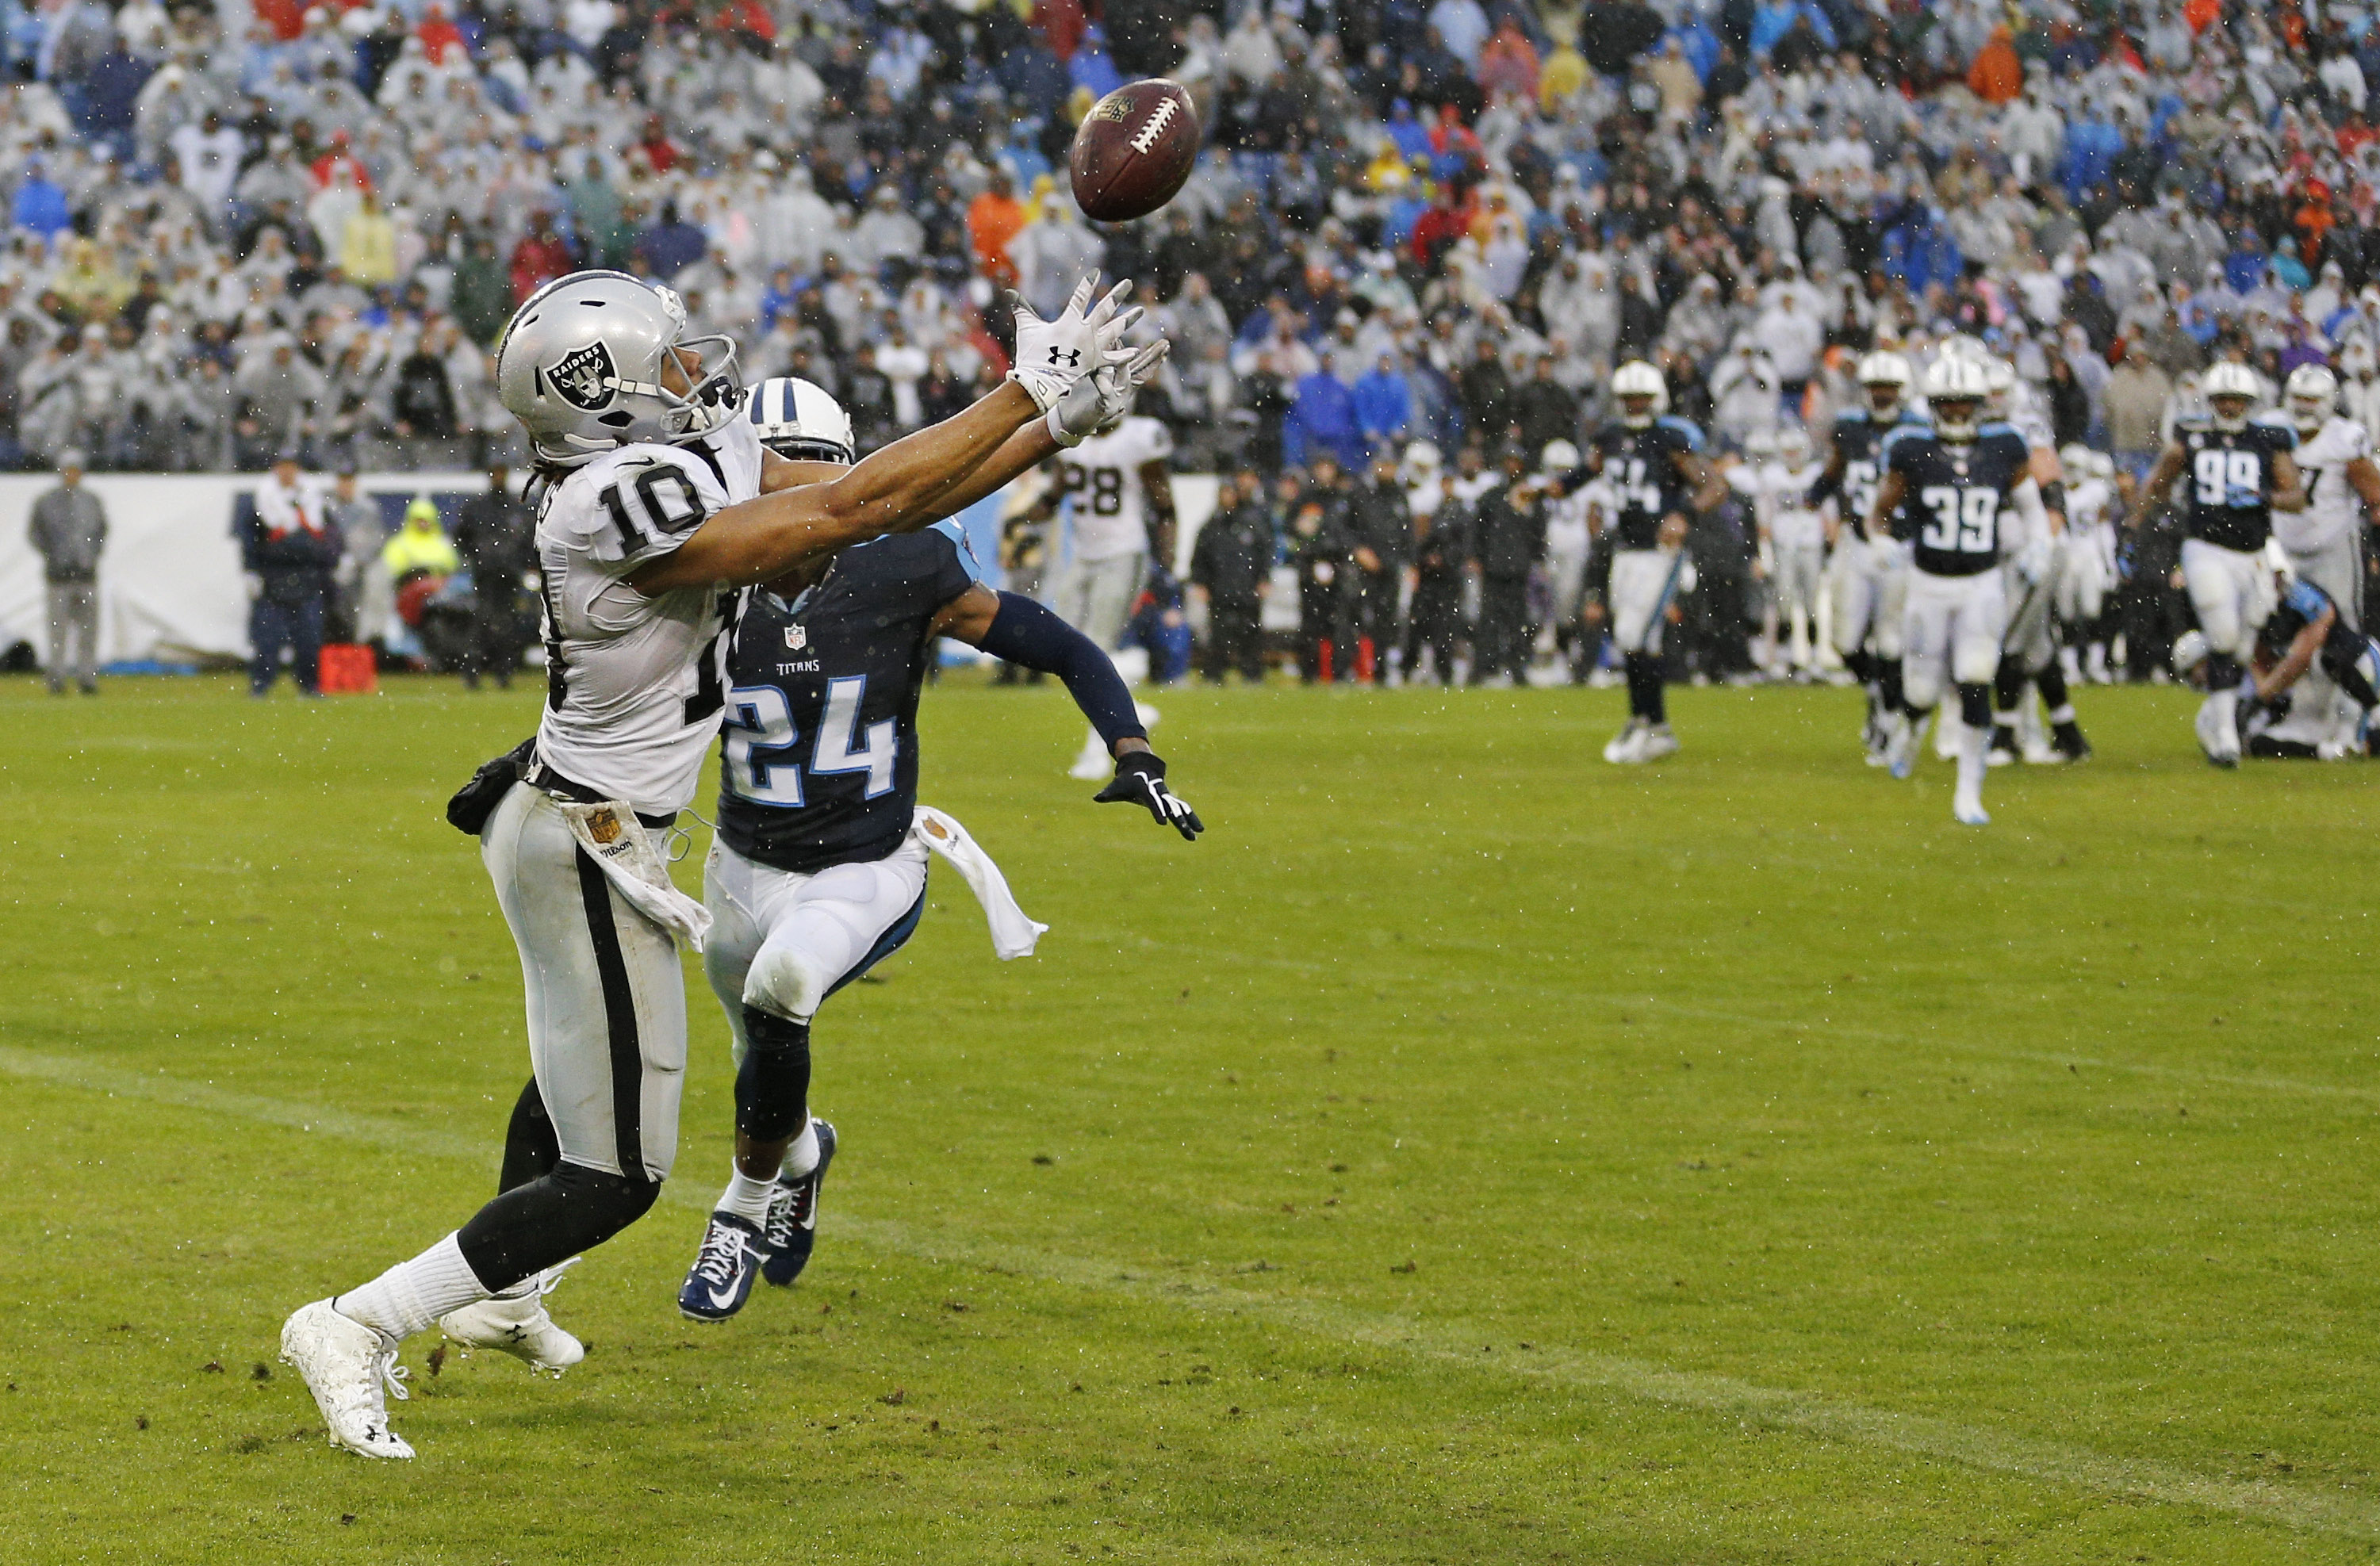 Oakland Raiders wide receiver Seth Roberts (10) catches a 12-yard touchdown pass as he is defended by Tennessee Titans cornerback Coty Sensabaugh (24) in the fourth quarter to give the Raiders a 24-21 win over the Titans in an NFL football game Sunday, No